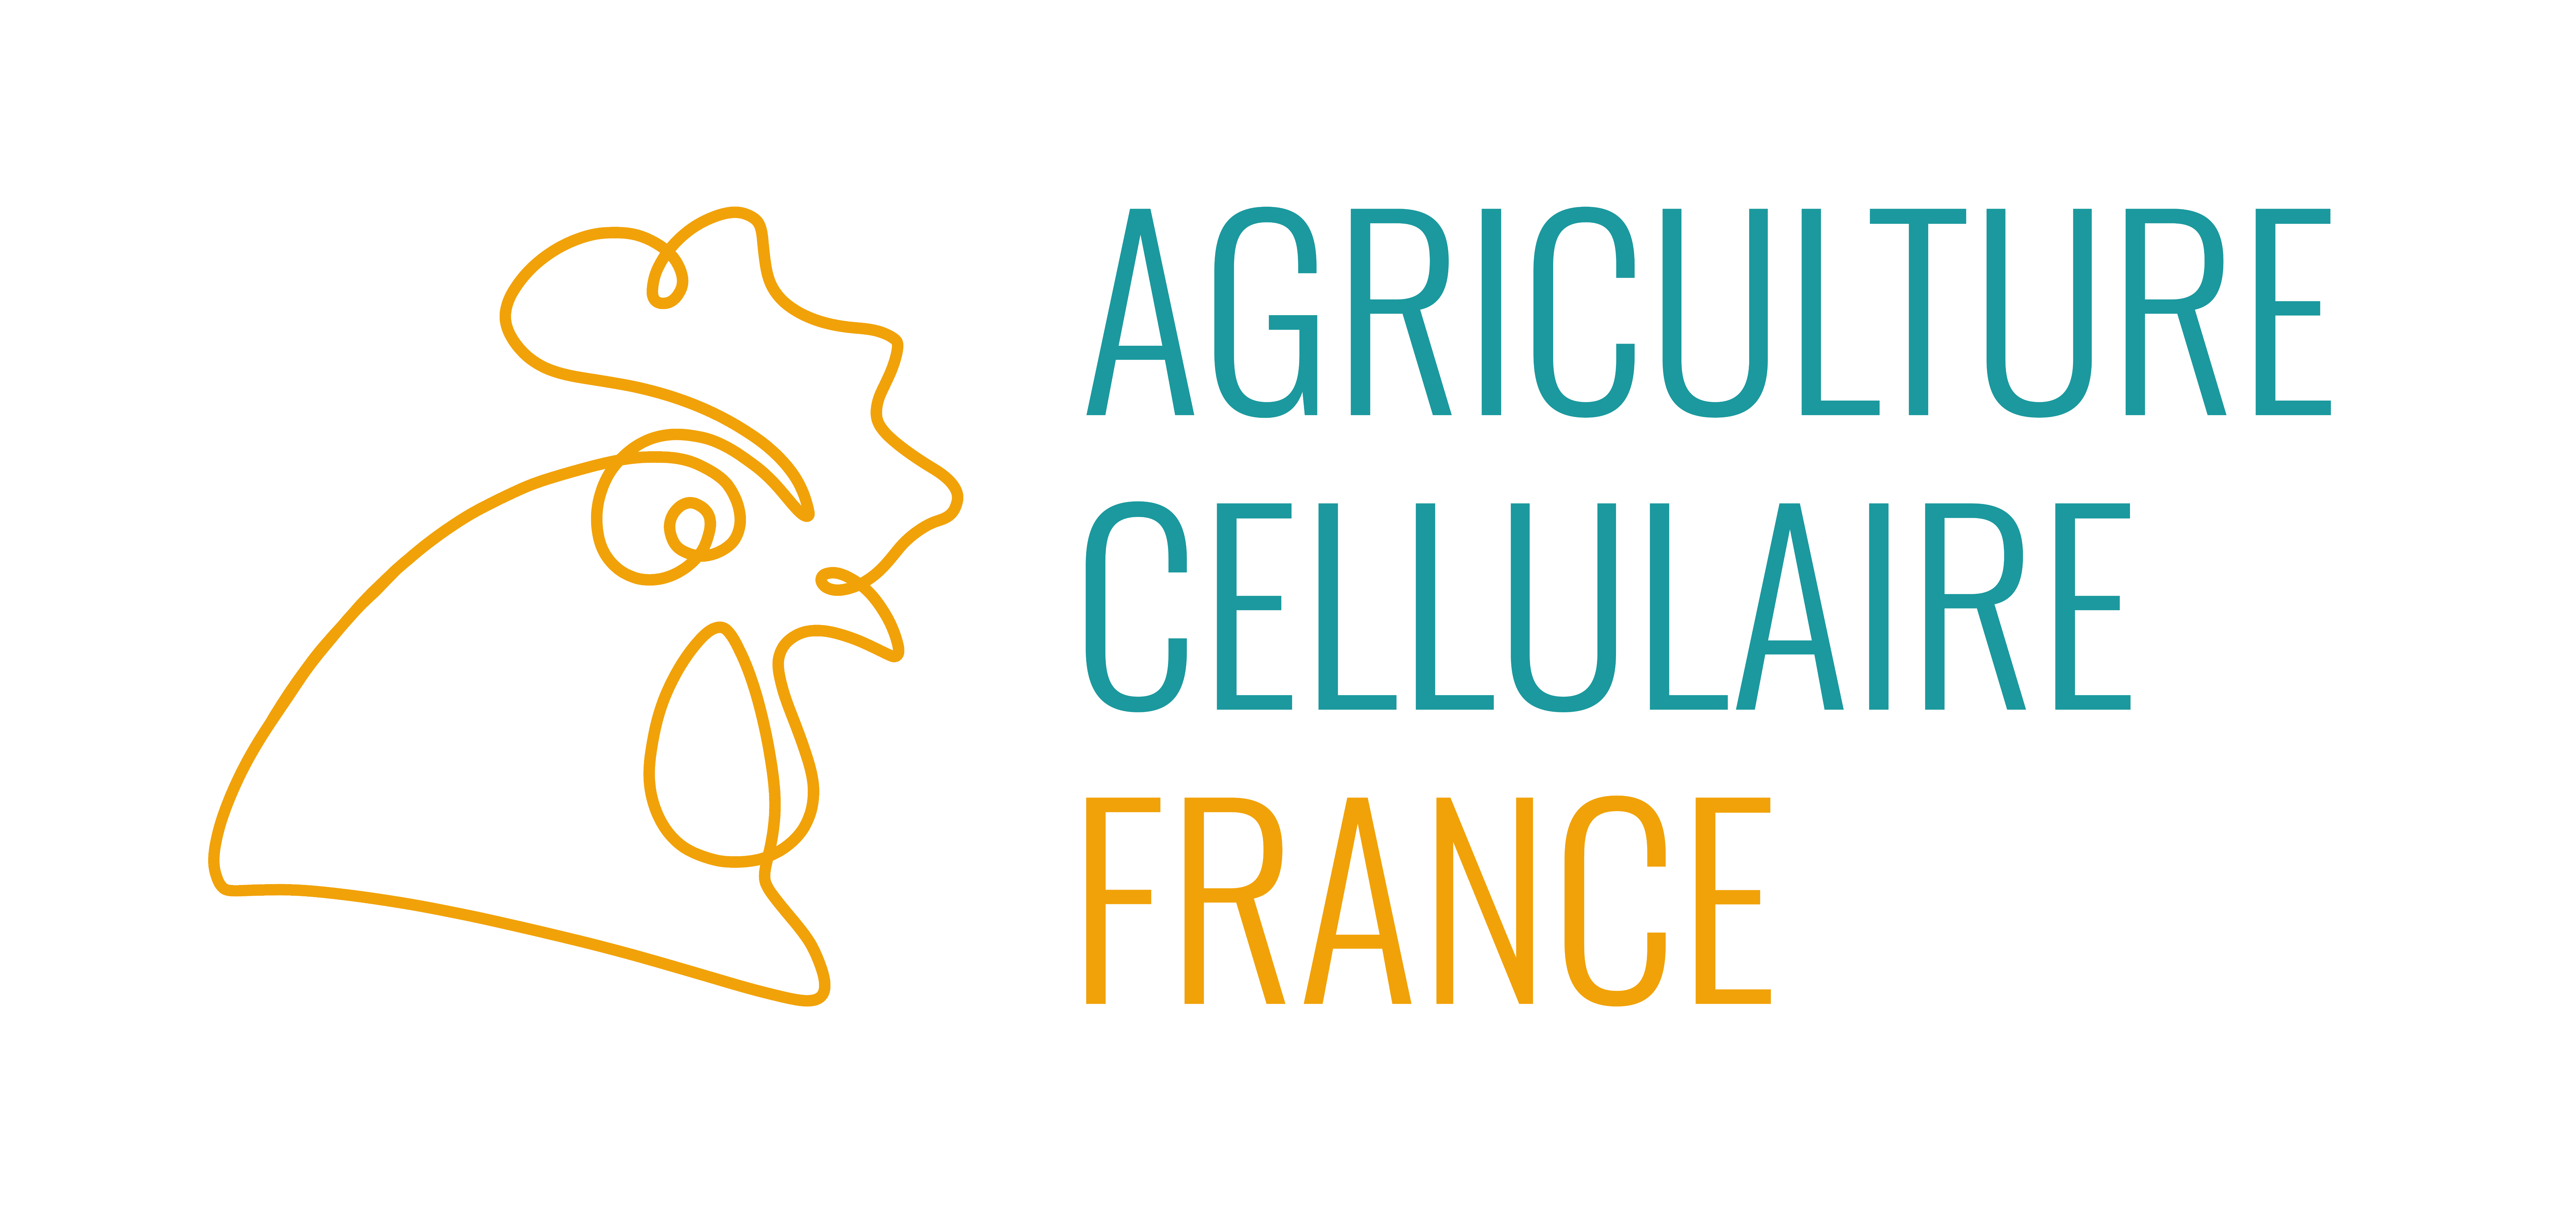 Agriculture Cellulaire France